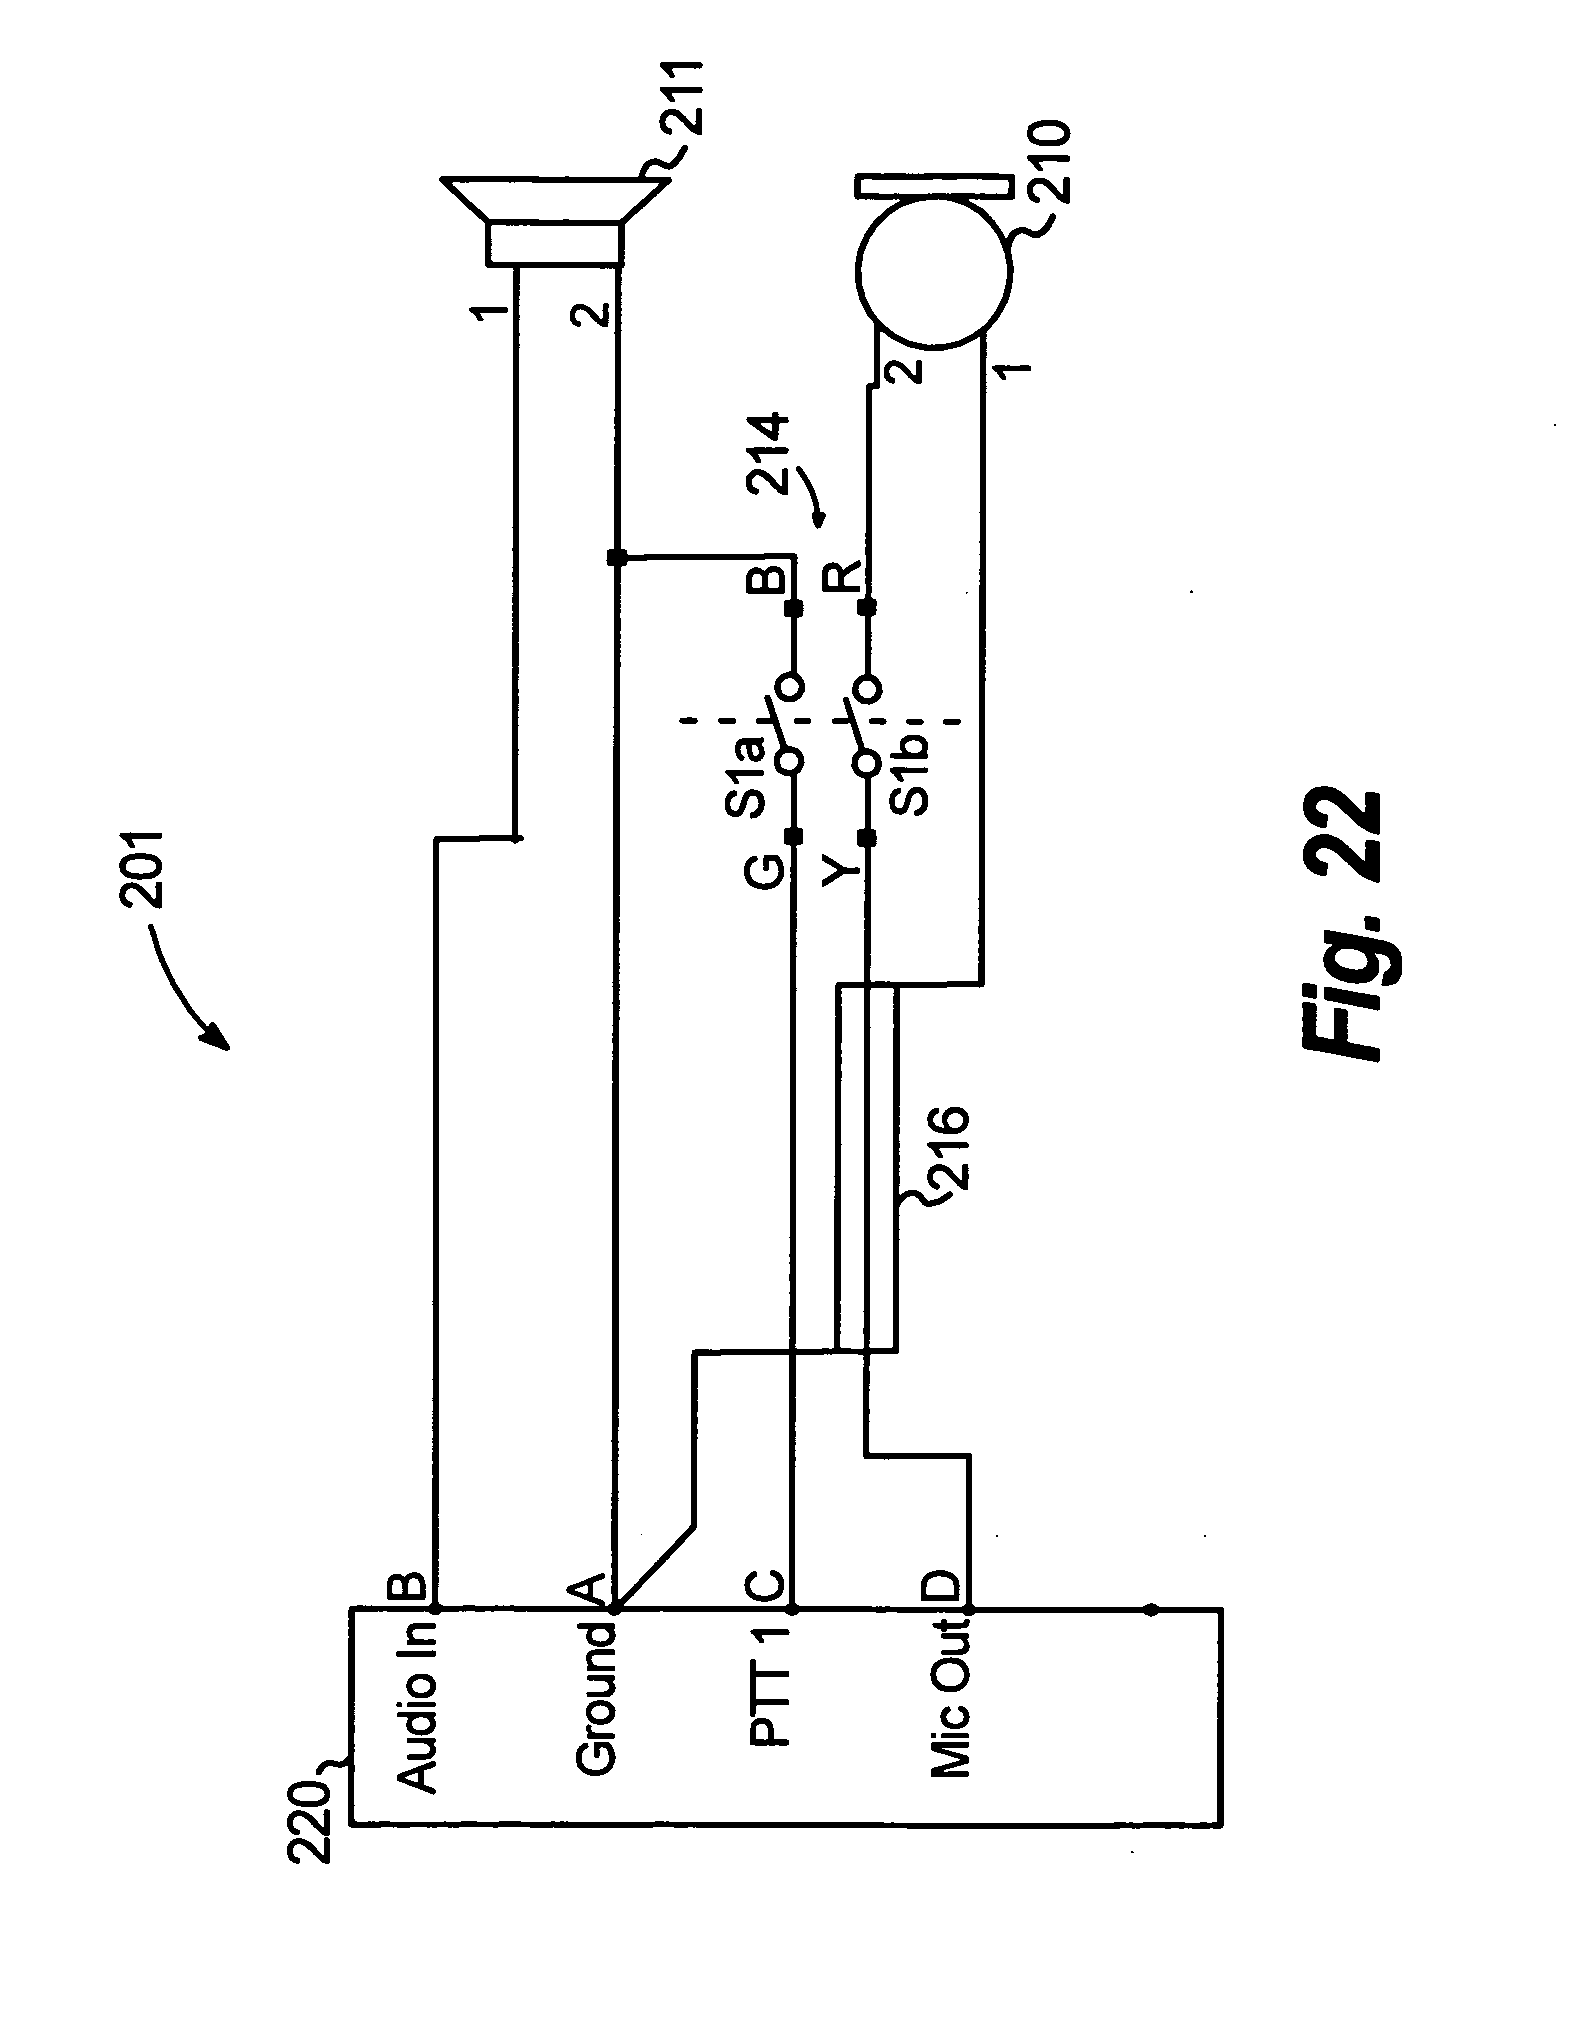 telephone handset wiring diagram of plant cell and animal to label motorola phone line